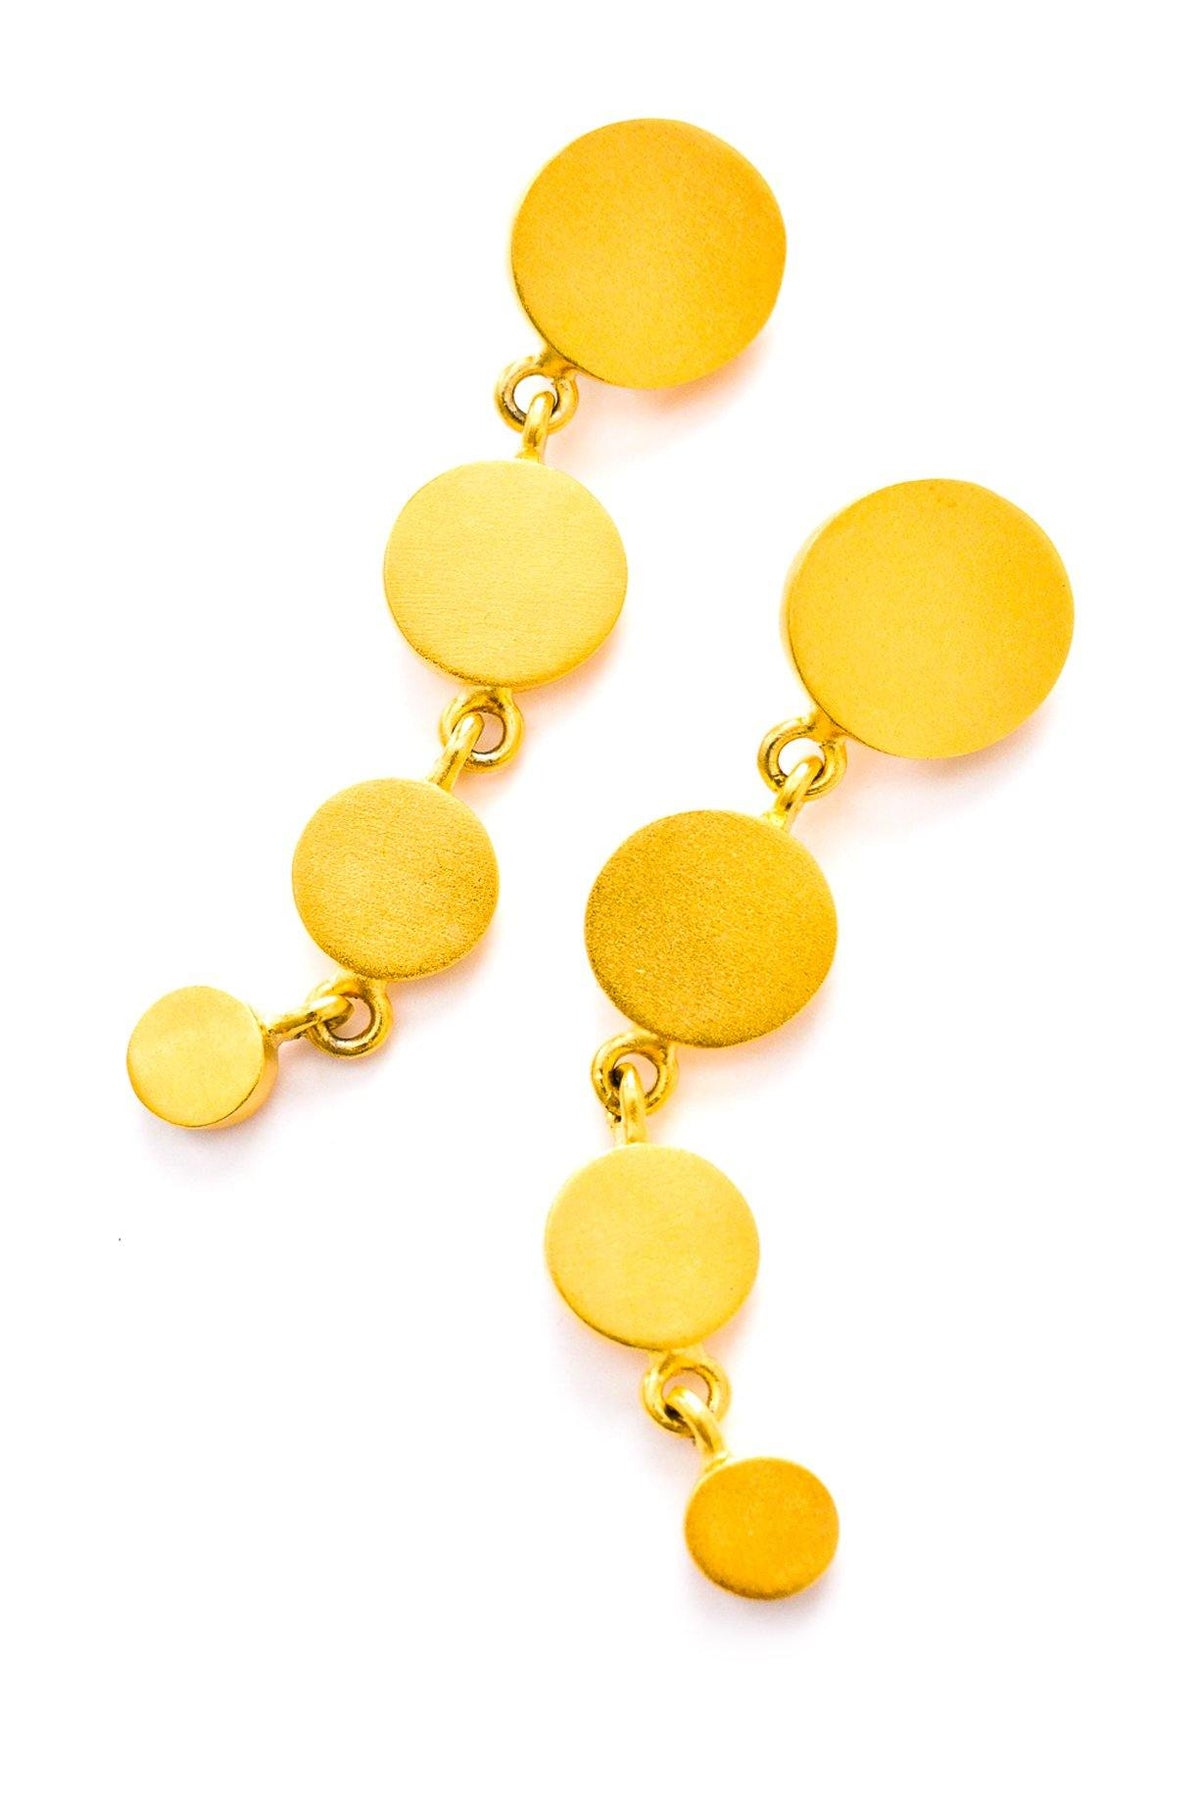 Vintage gold statement drop earrings from Sweet & Spark.